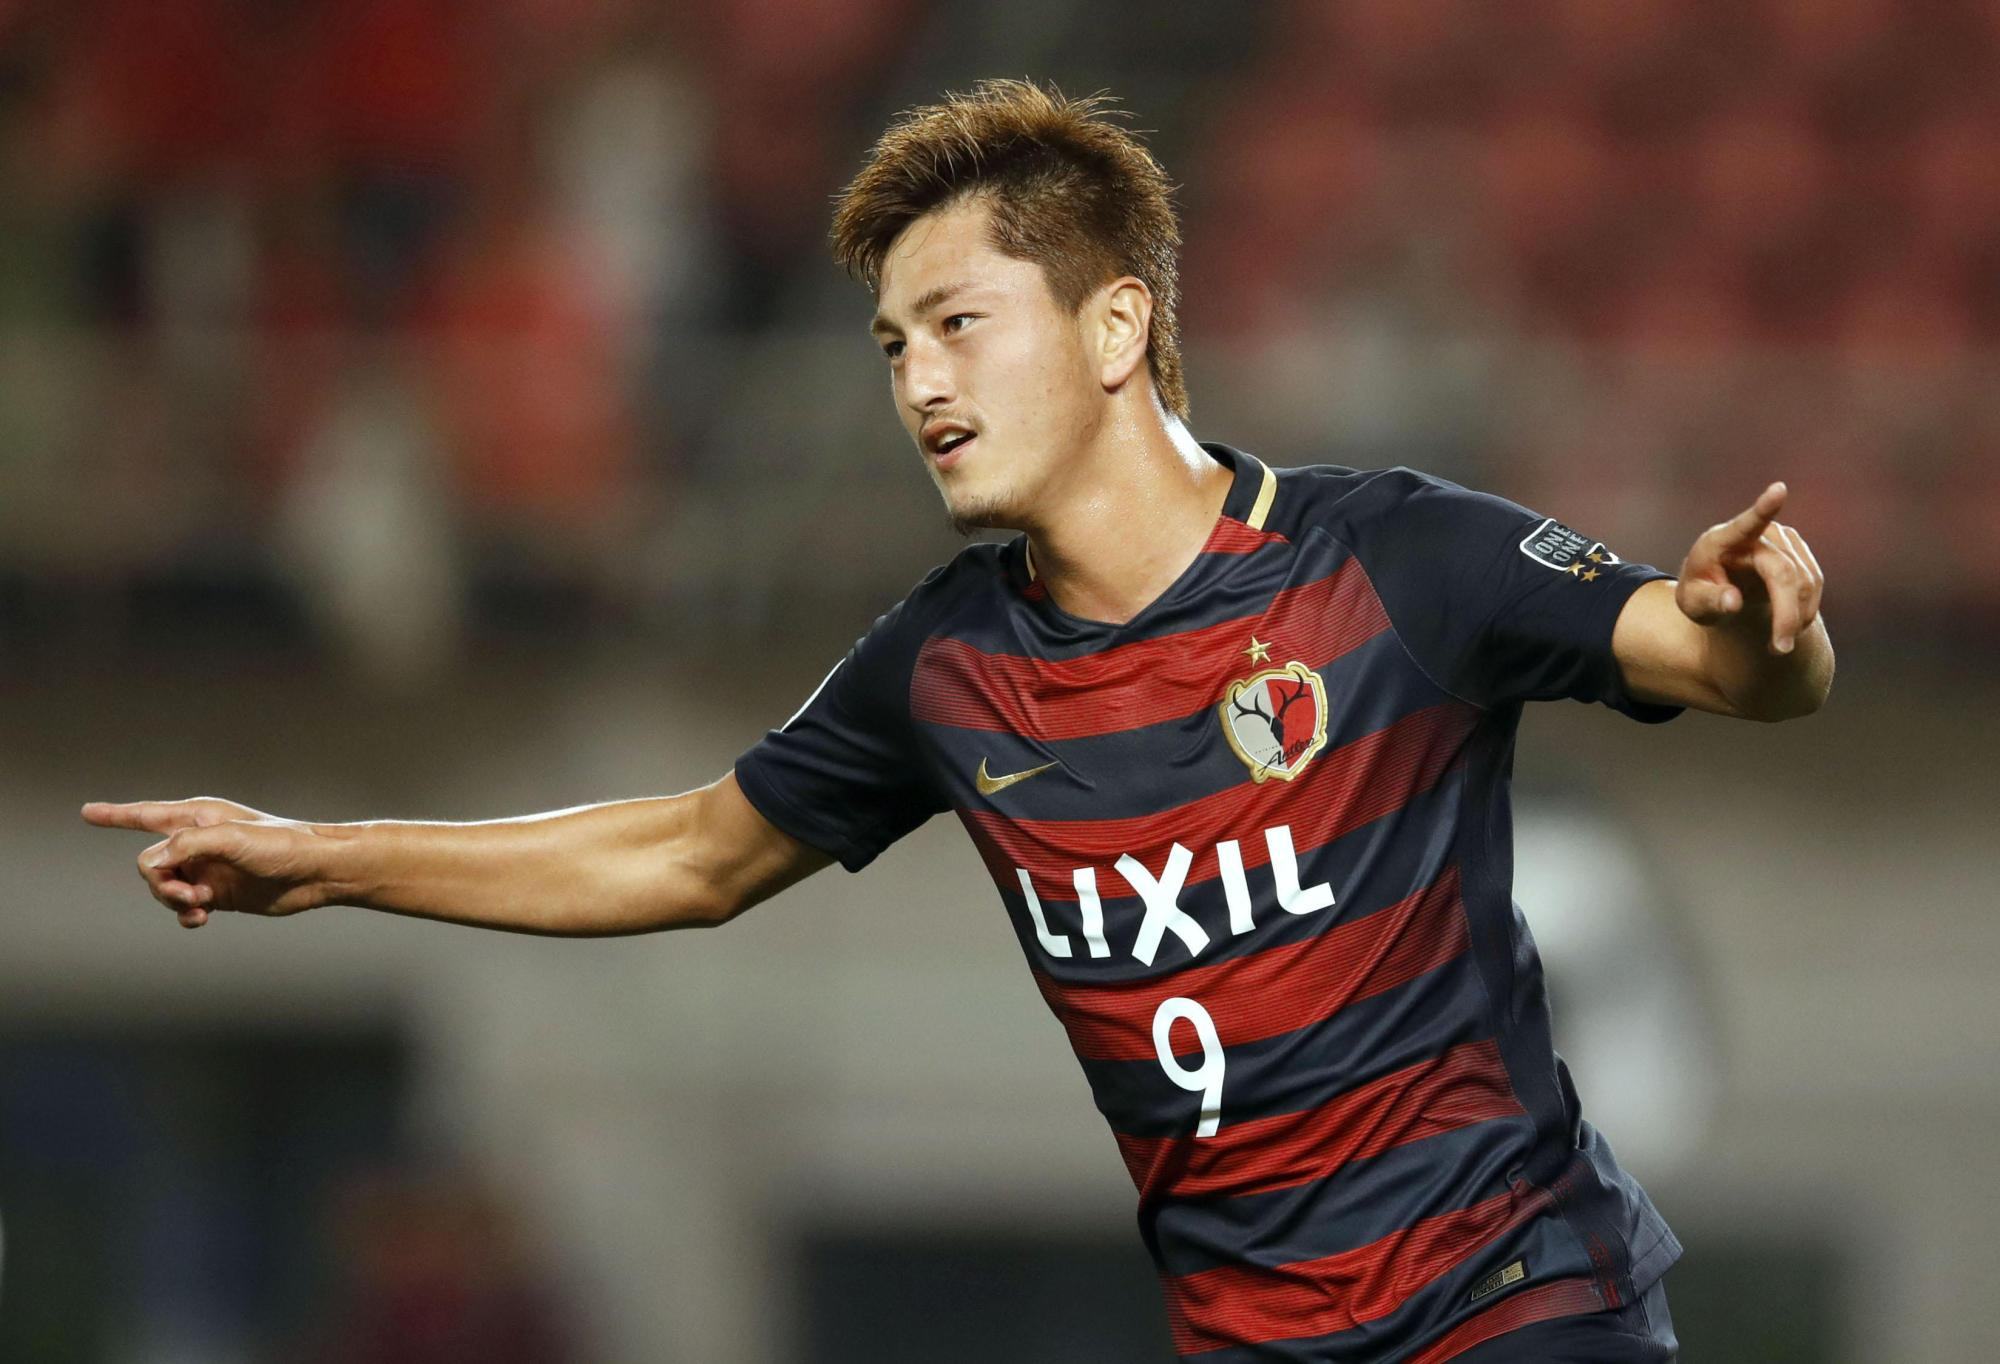 Kashima's Yuma Suzuki celebrates after scoring his second goal during Antlers' 2-1 win over Muangthong Unted in Asian Champions League action on Wednesday.   KYODO